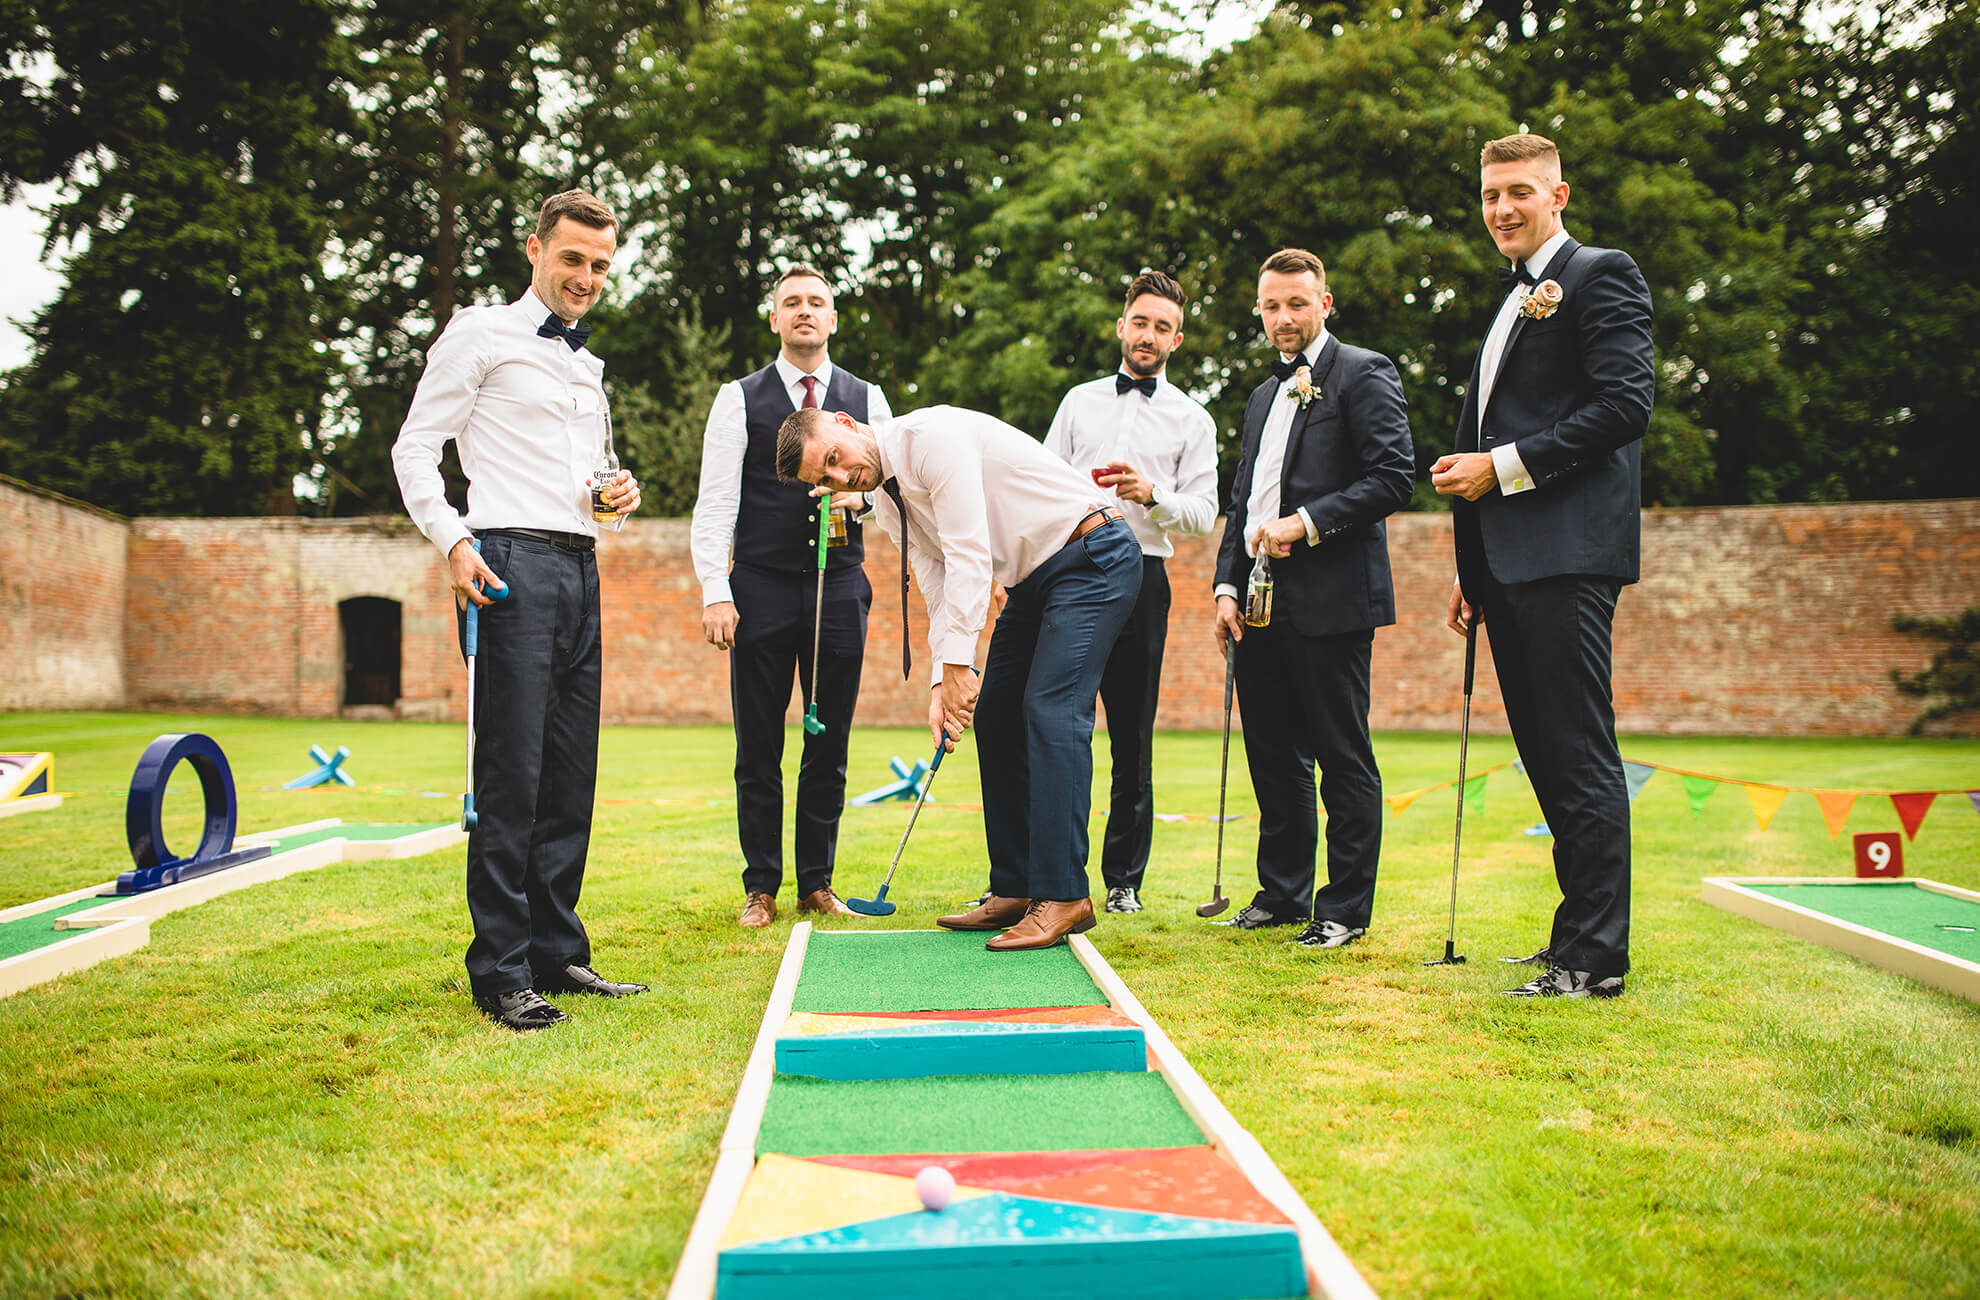 Crazy golf is a great wedding game to keep guests entertained during oyur wedding day at Combermere Abbey